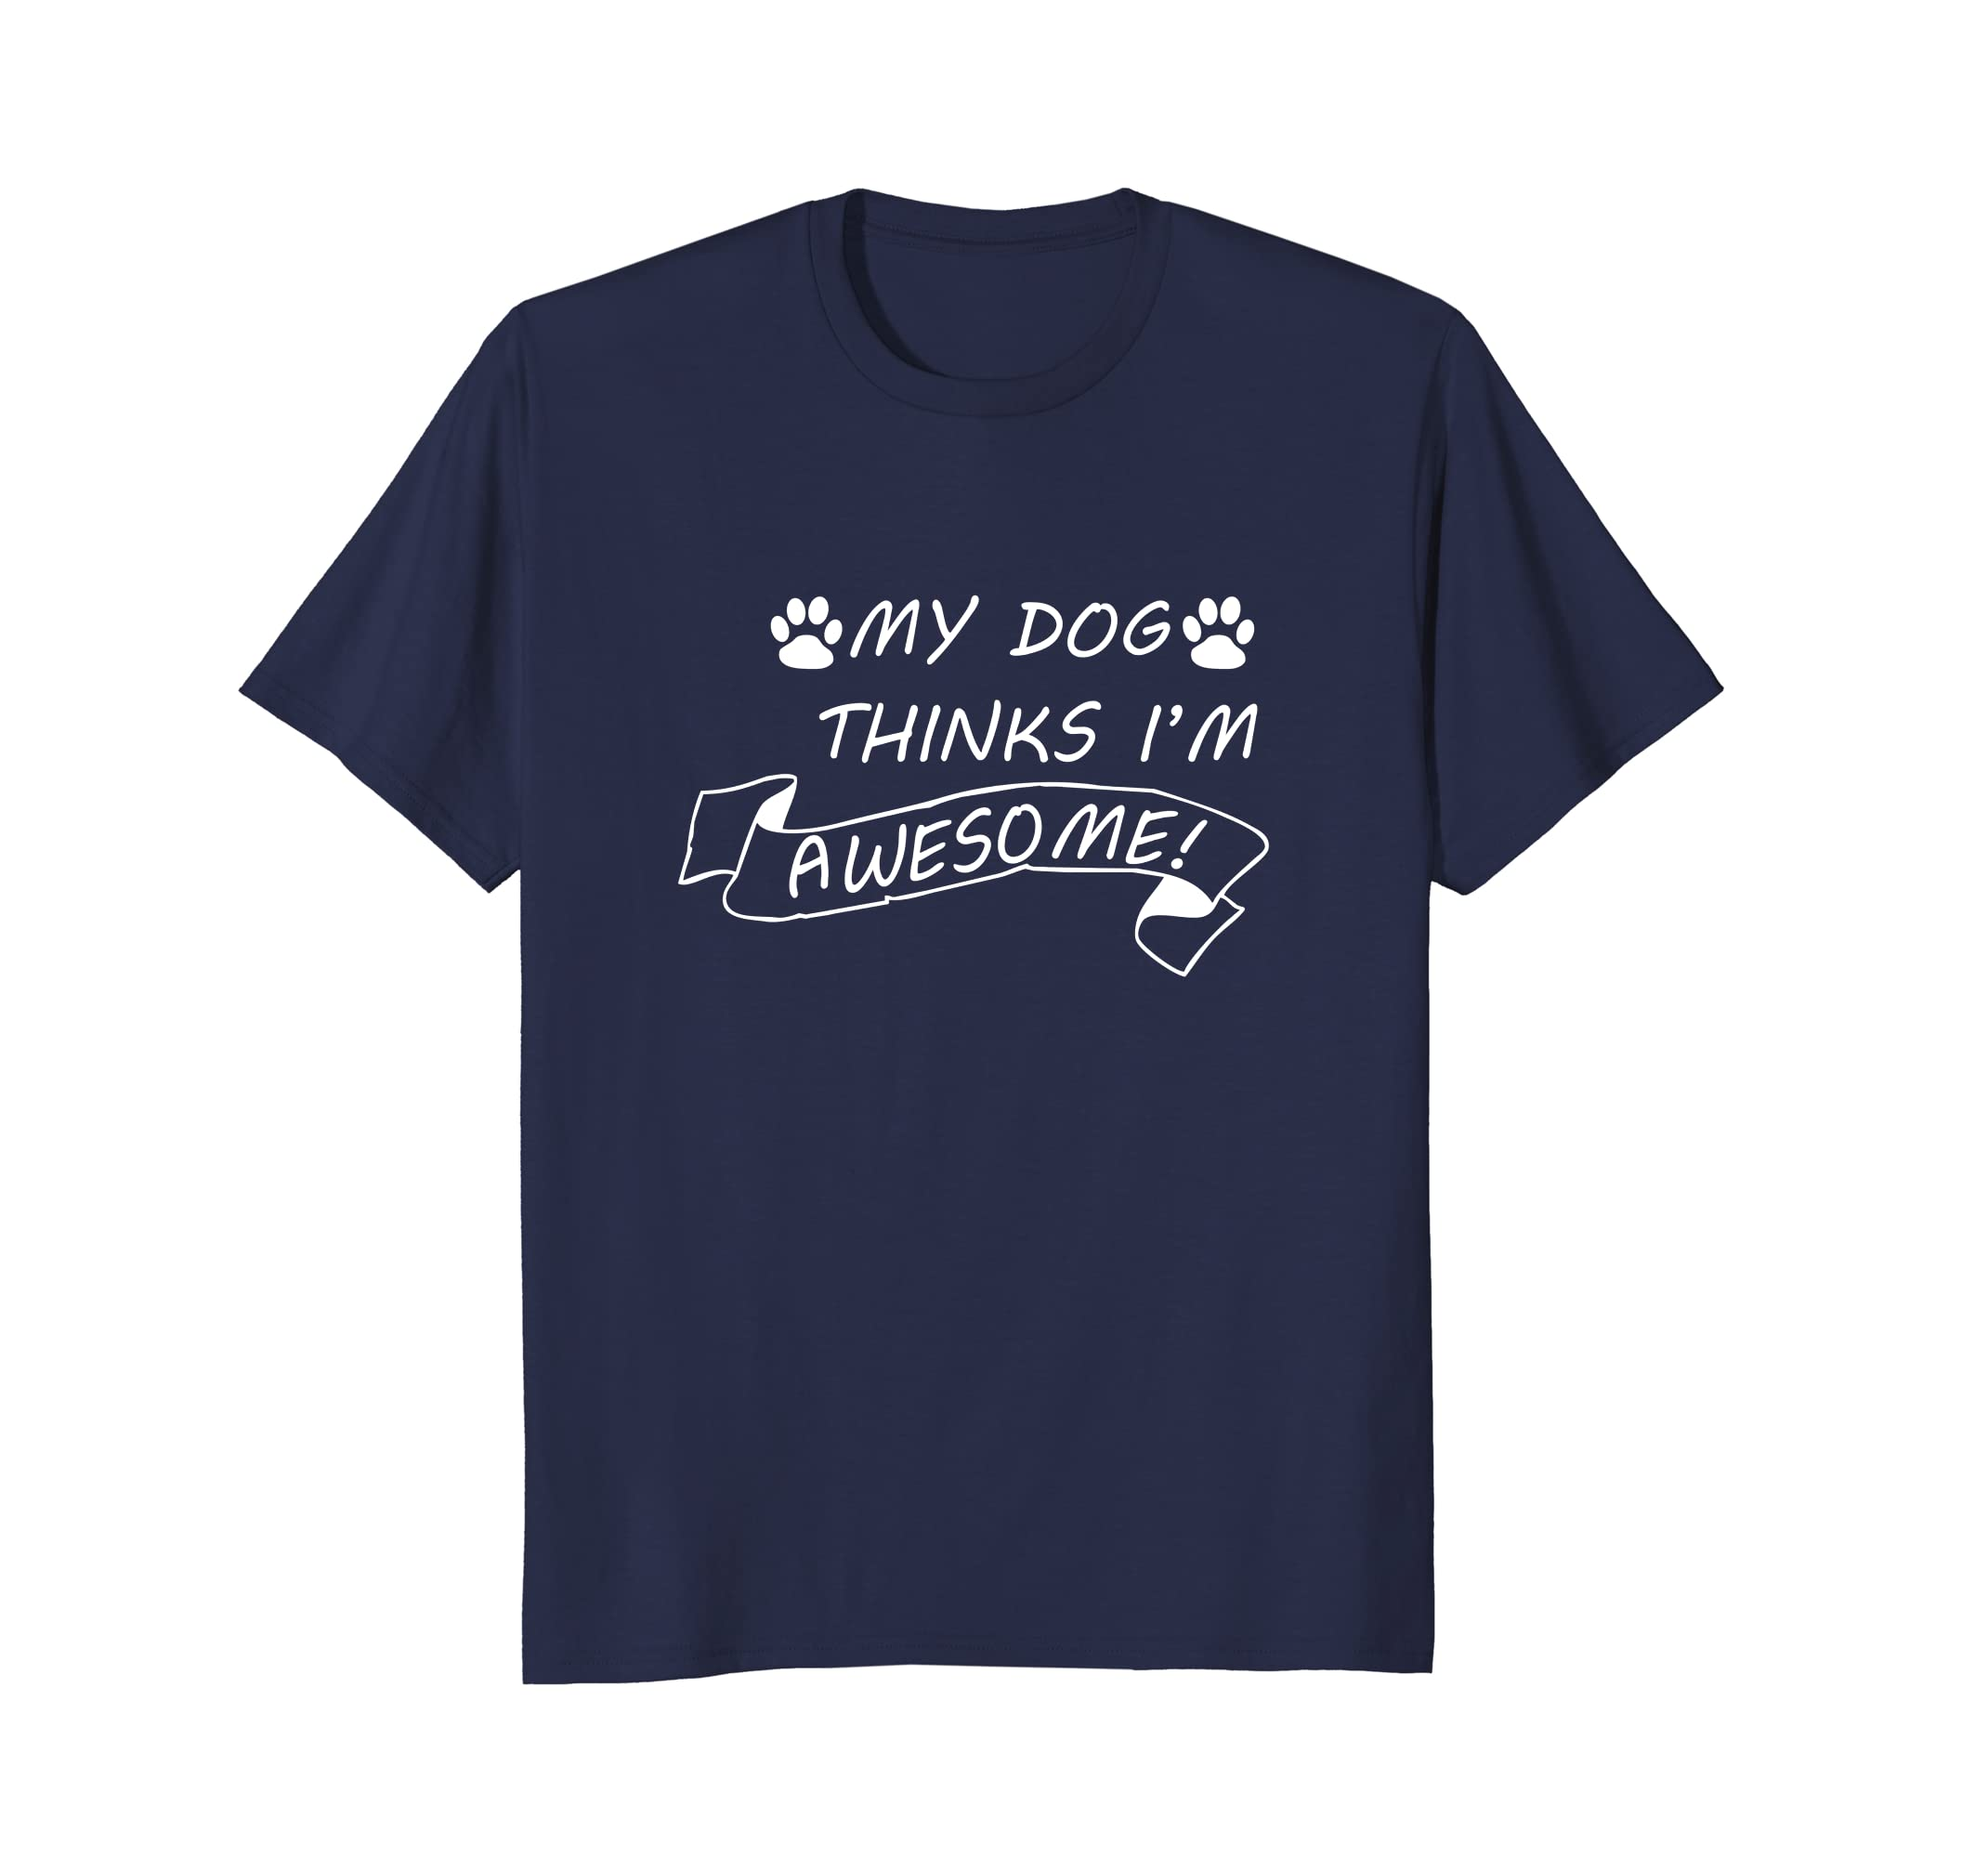 My Dog Thinks I'm Awesome Funny Dog T-Shirt Men Women Kids-AZP